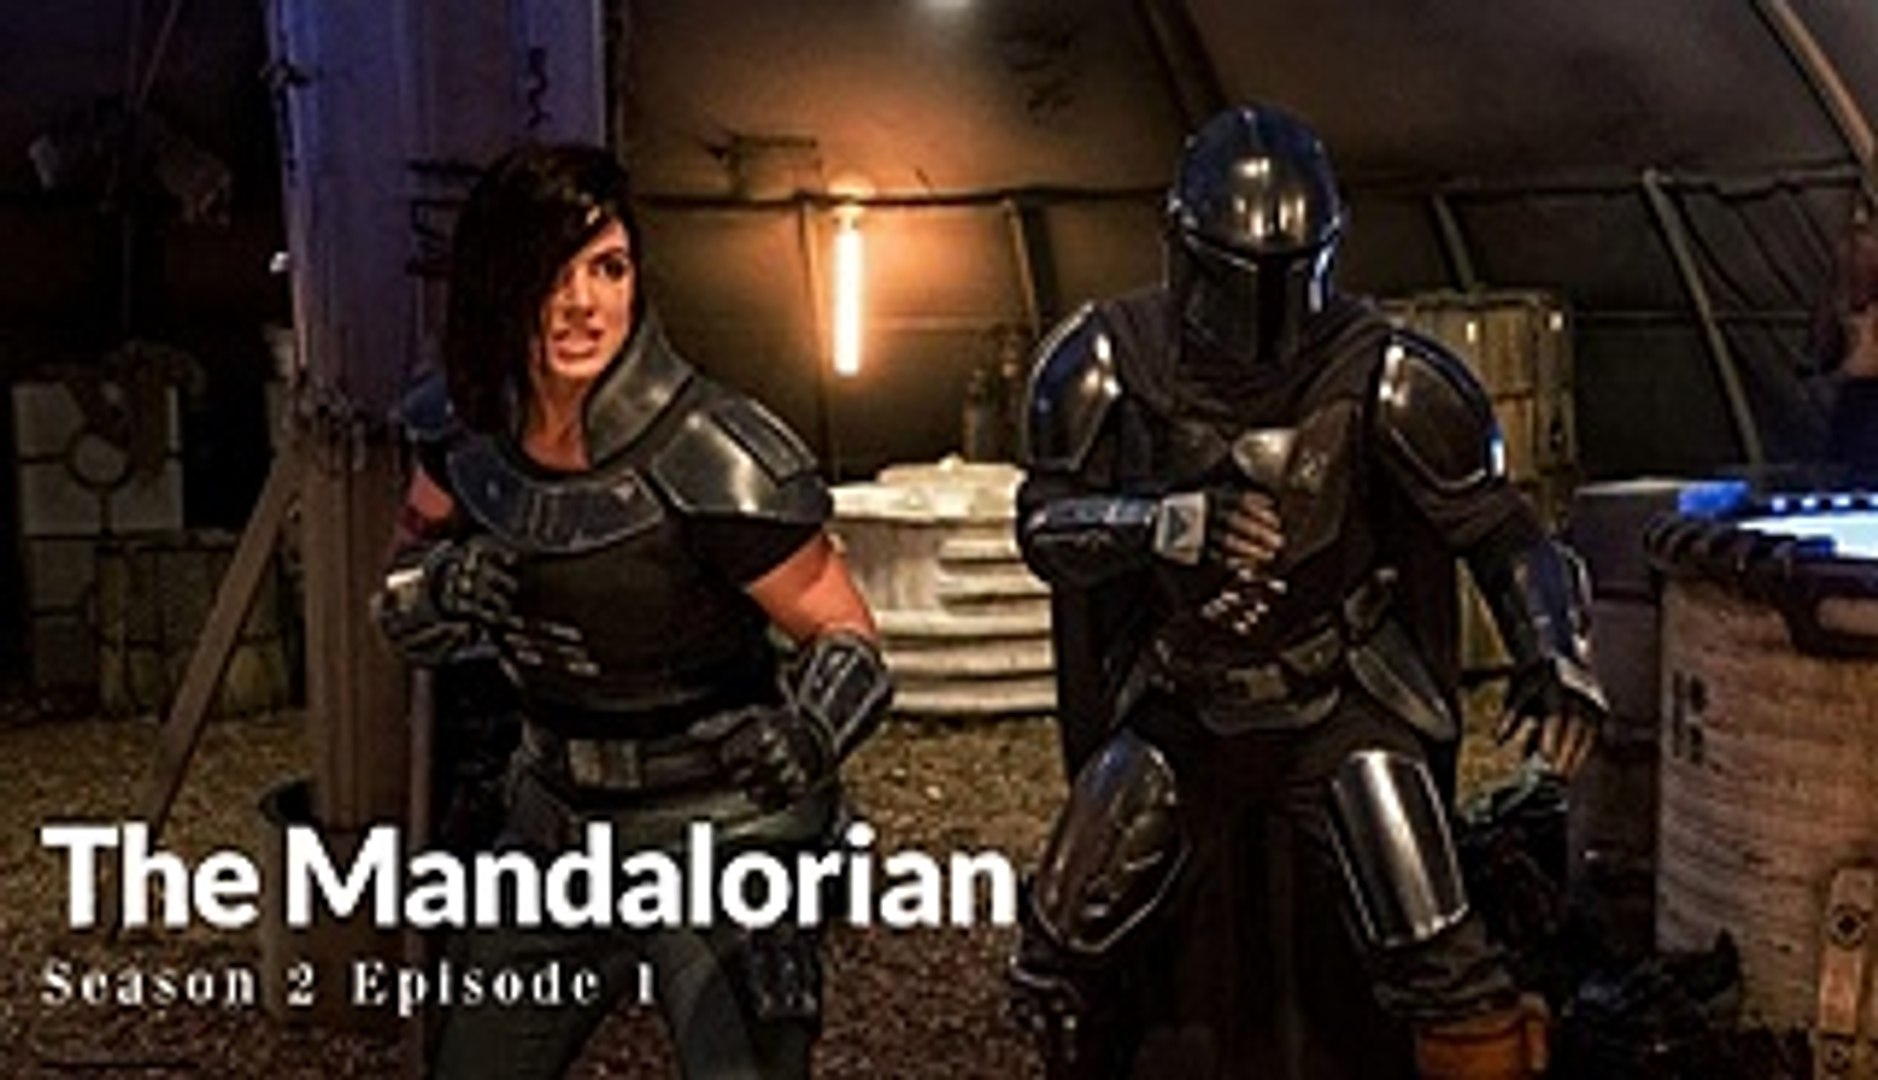 The Mandalorian Season 2 Episode 1 Action Adventure Western Tv Episode 2020 Video Dailymotion